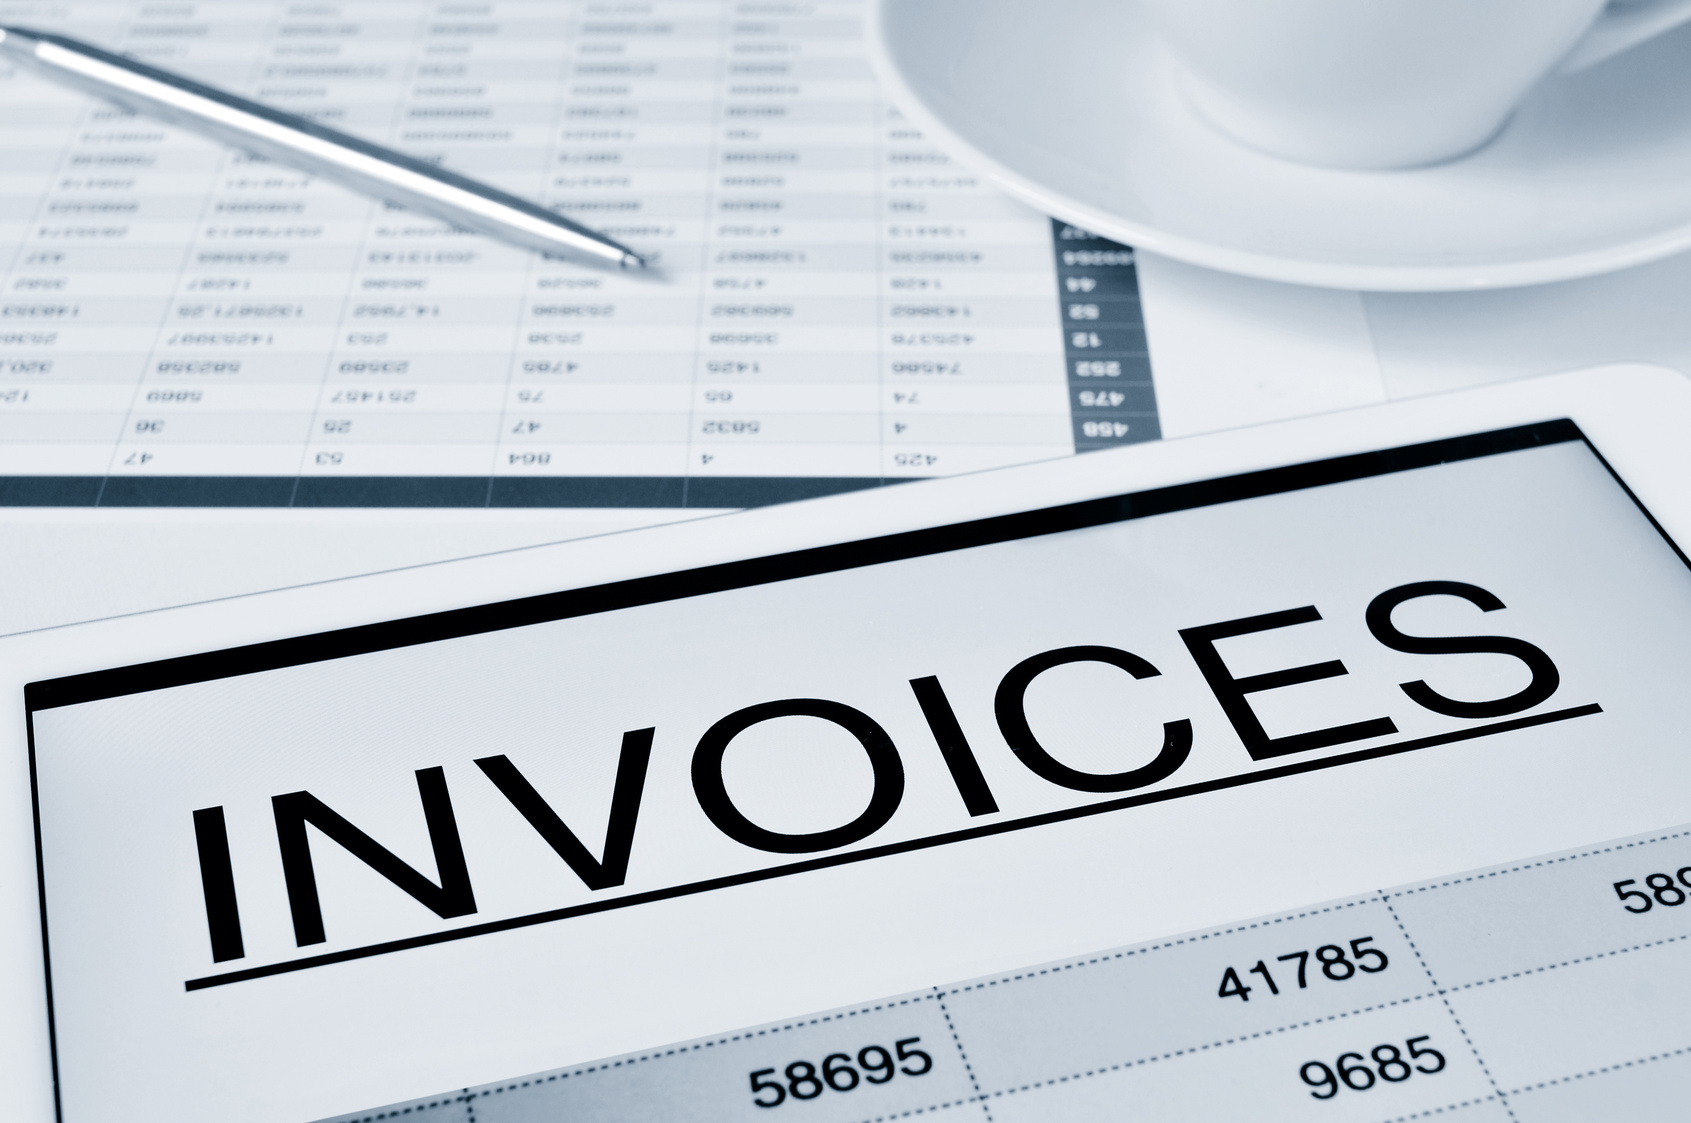 3 Reasons Invoice Factoring Can Improve Business Cash Flow